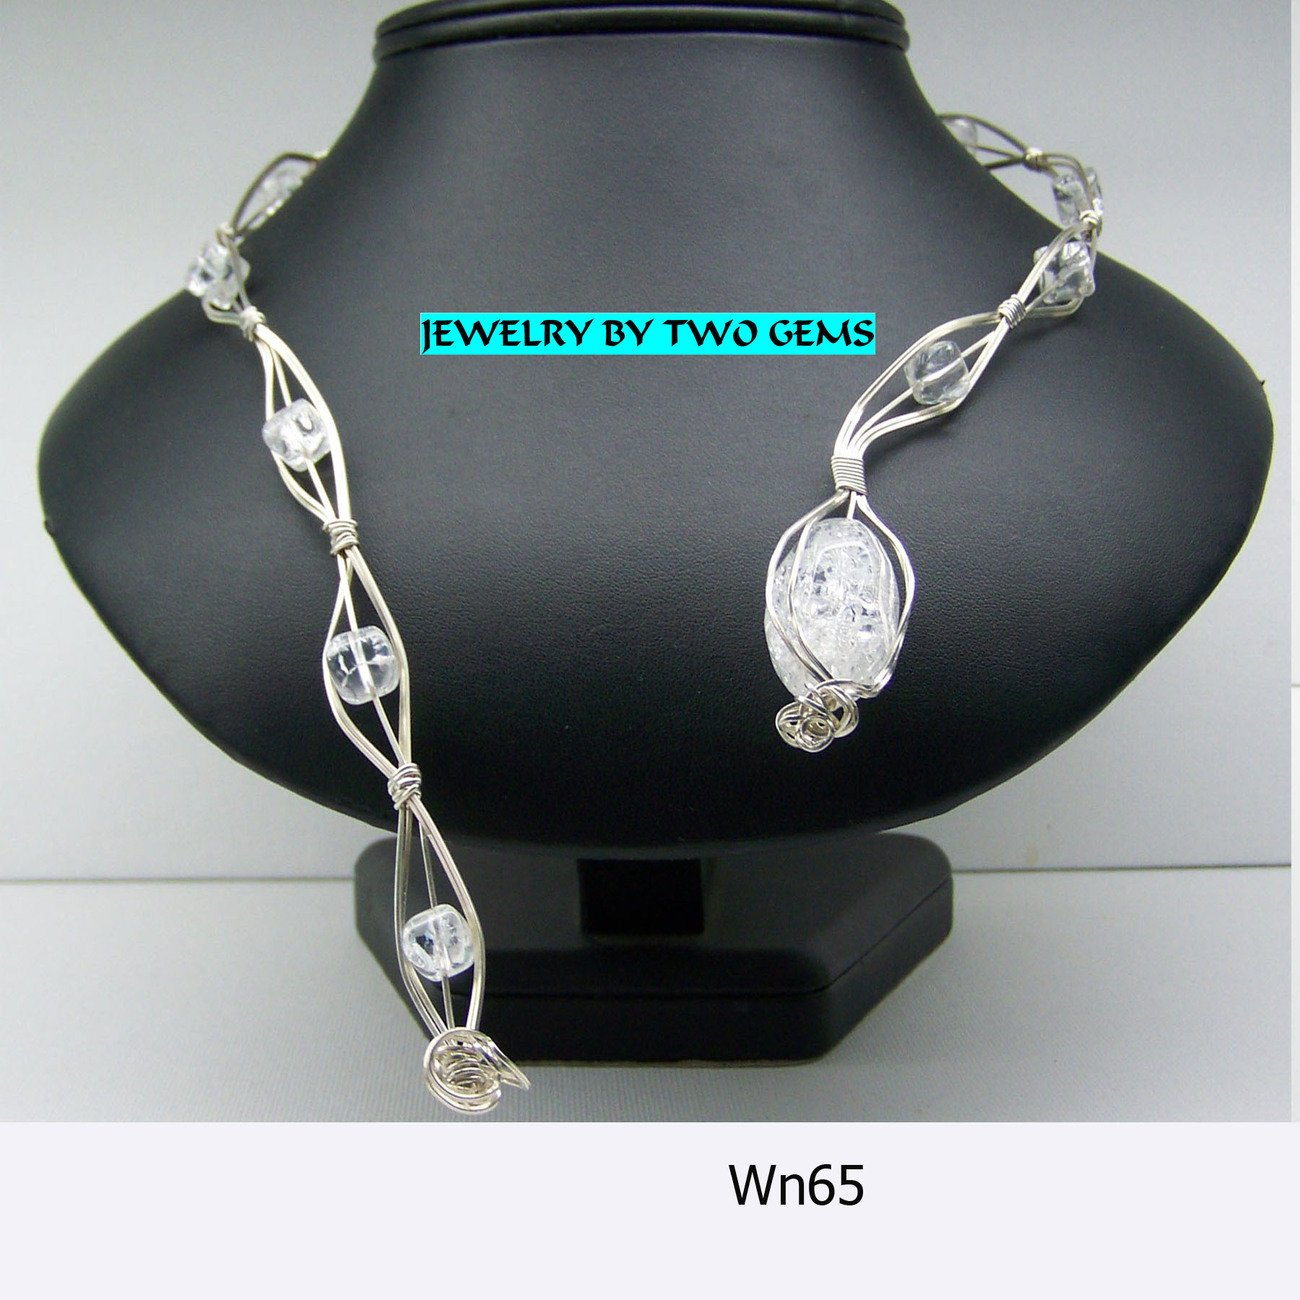 Jewelry By Two Gems (Wn65) Sterling Silver Wire Wrap Necklac